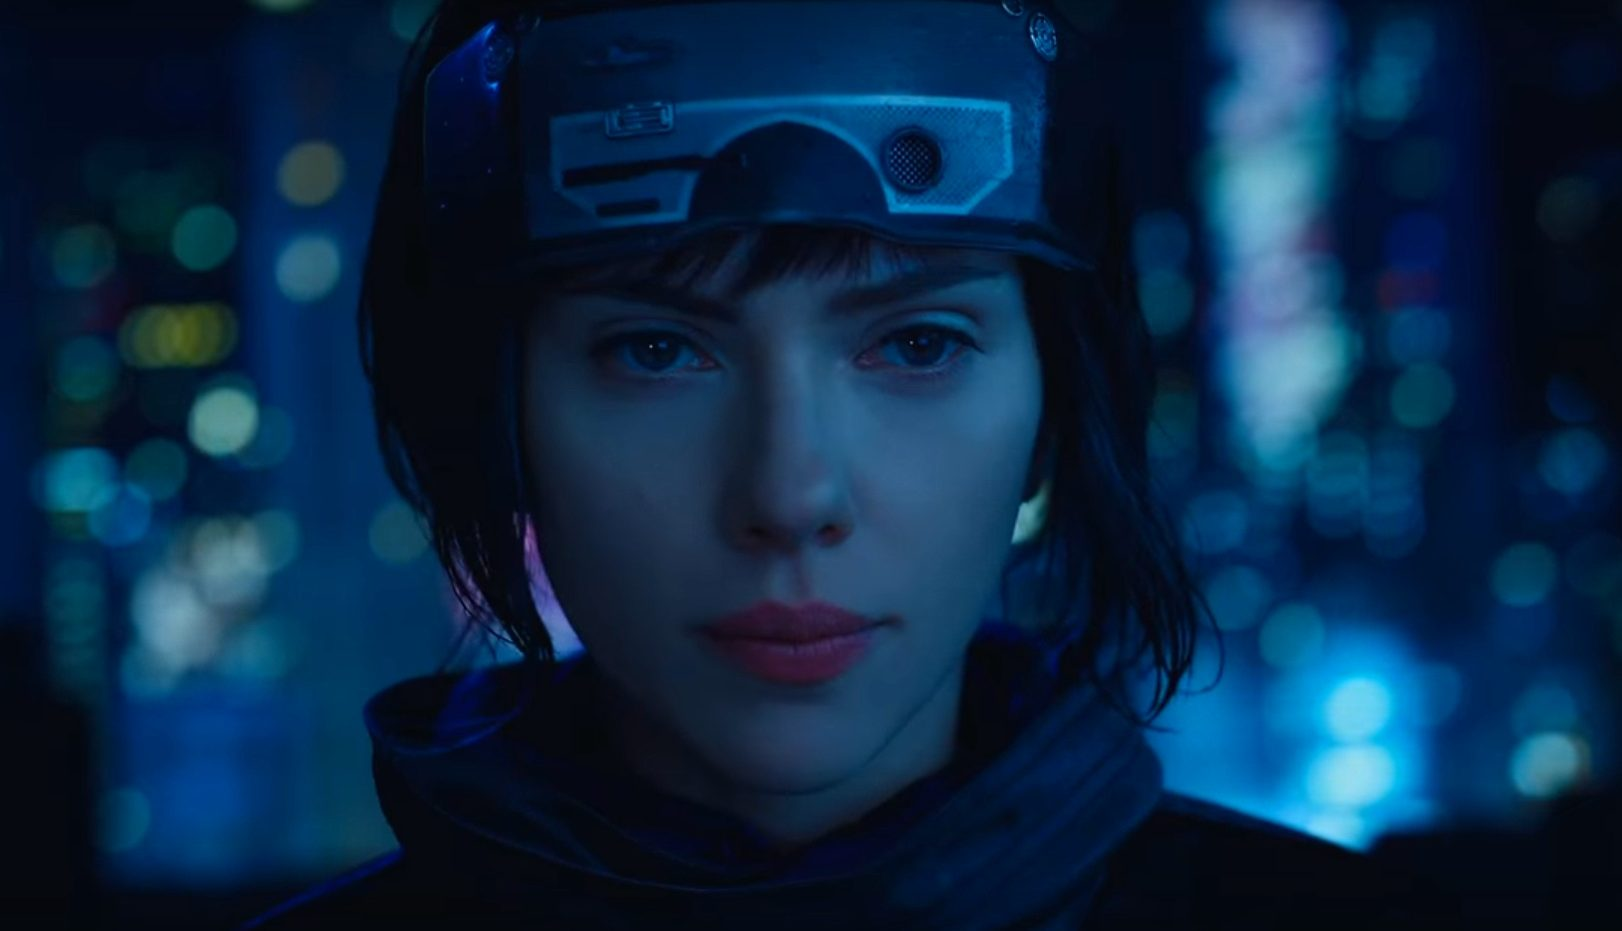 scarlett-johansson-ghost-in-the-shell-maggiore-major-trailer